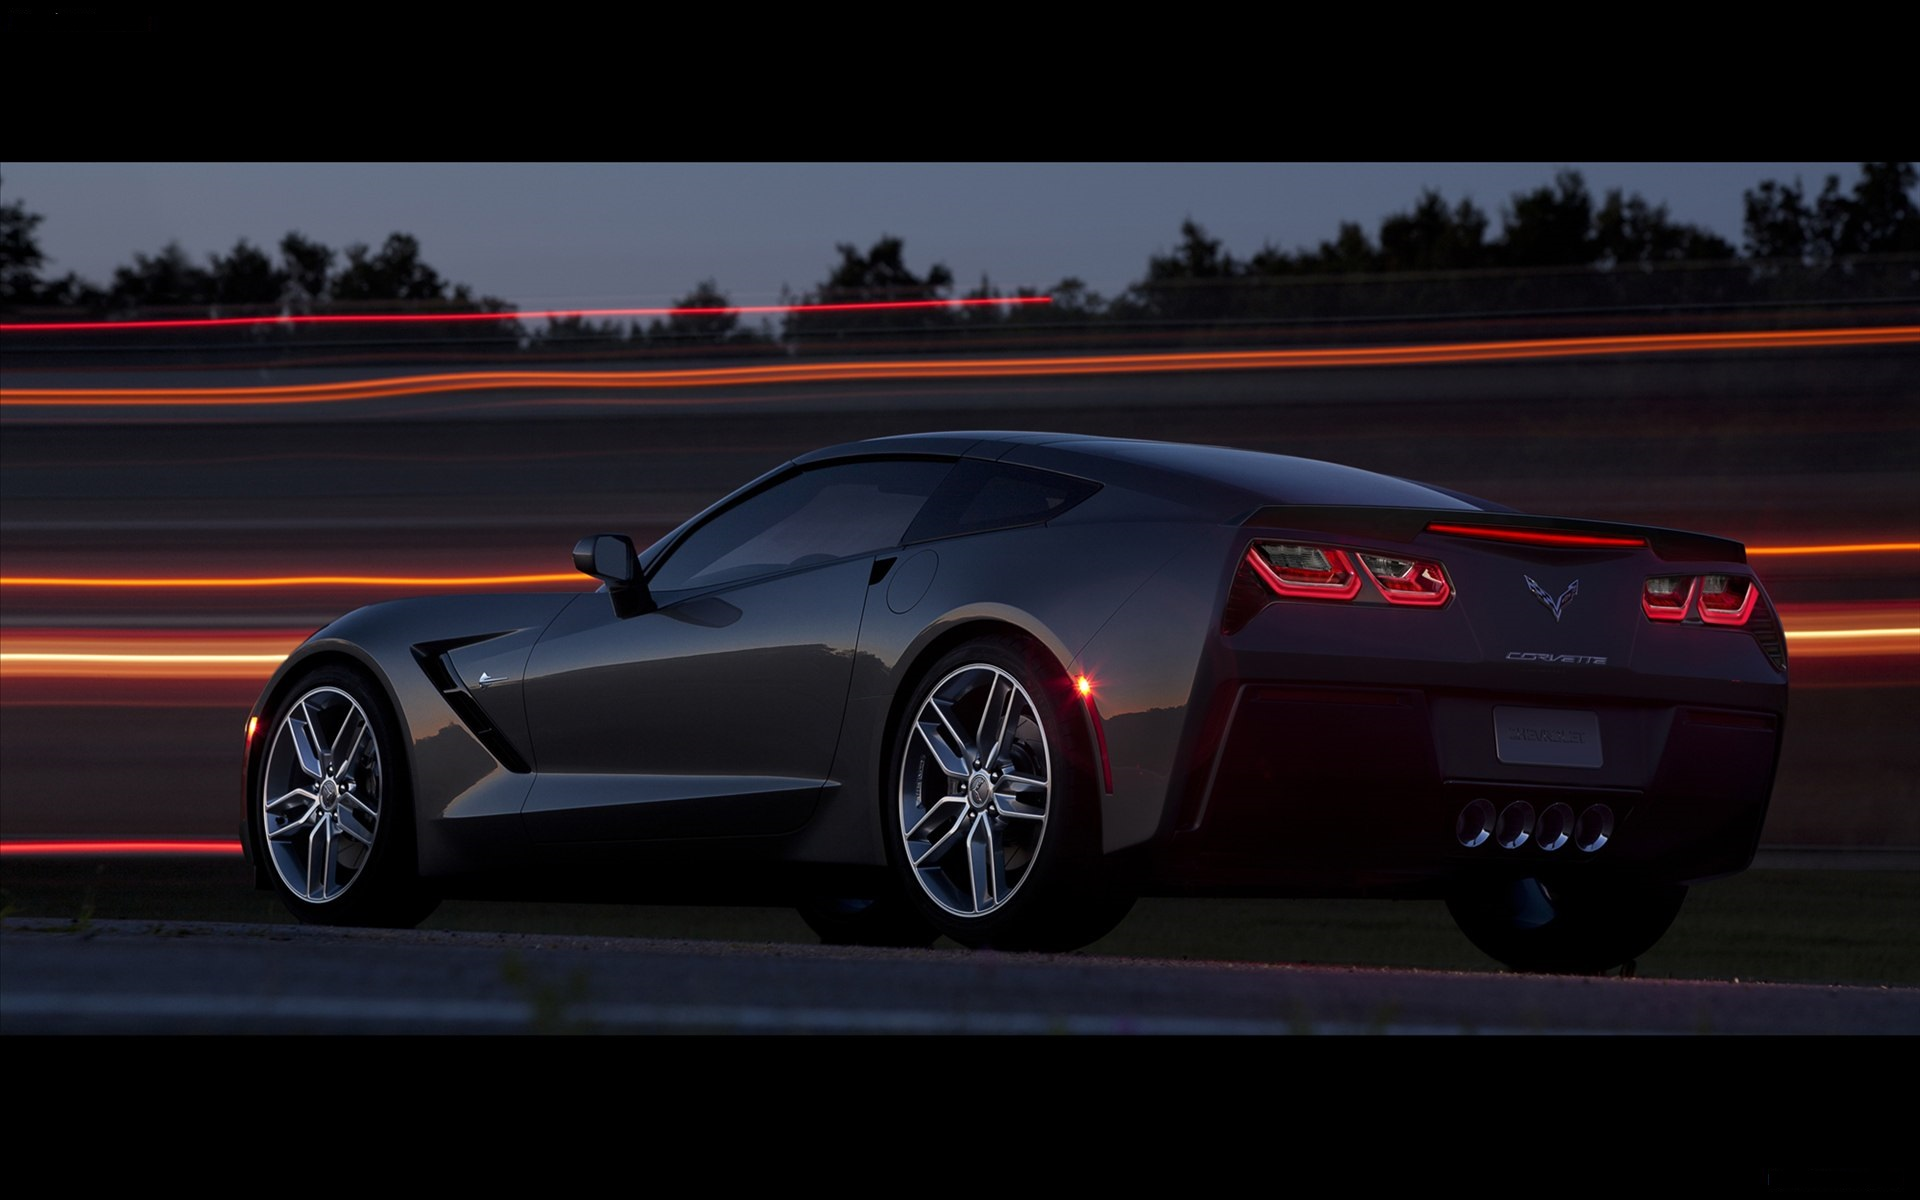 C7 CORVETTE  Cars Images & Pictures